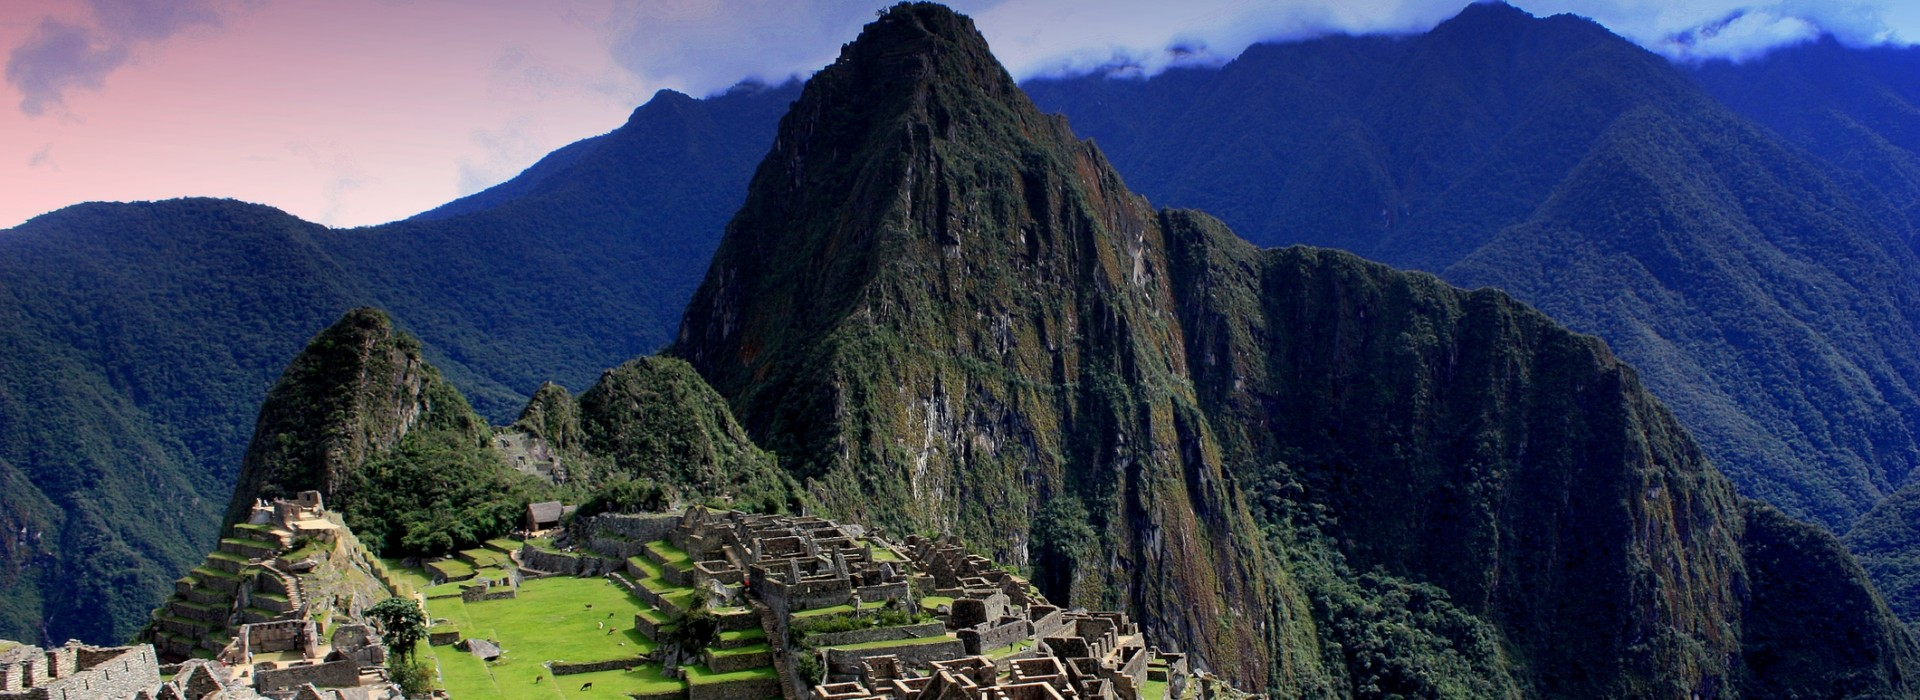 View of Machu Picchu from the Inca Trail